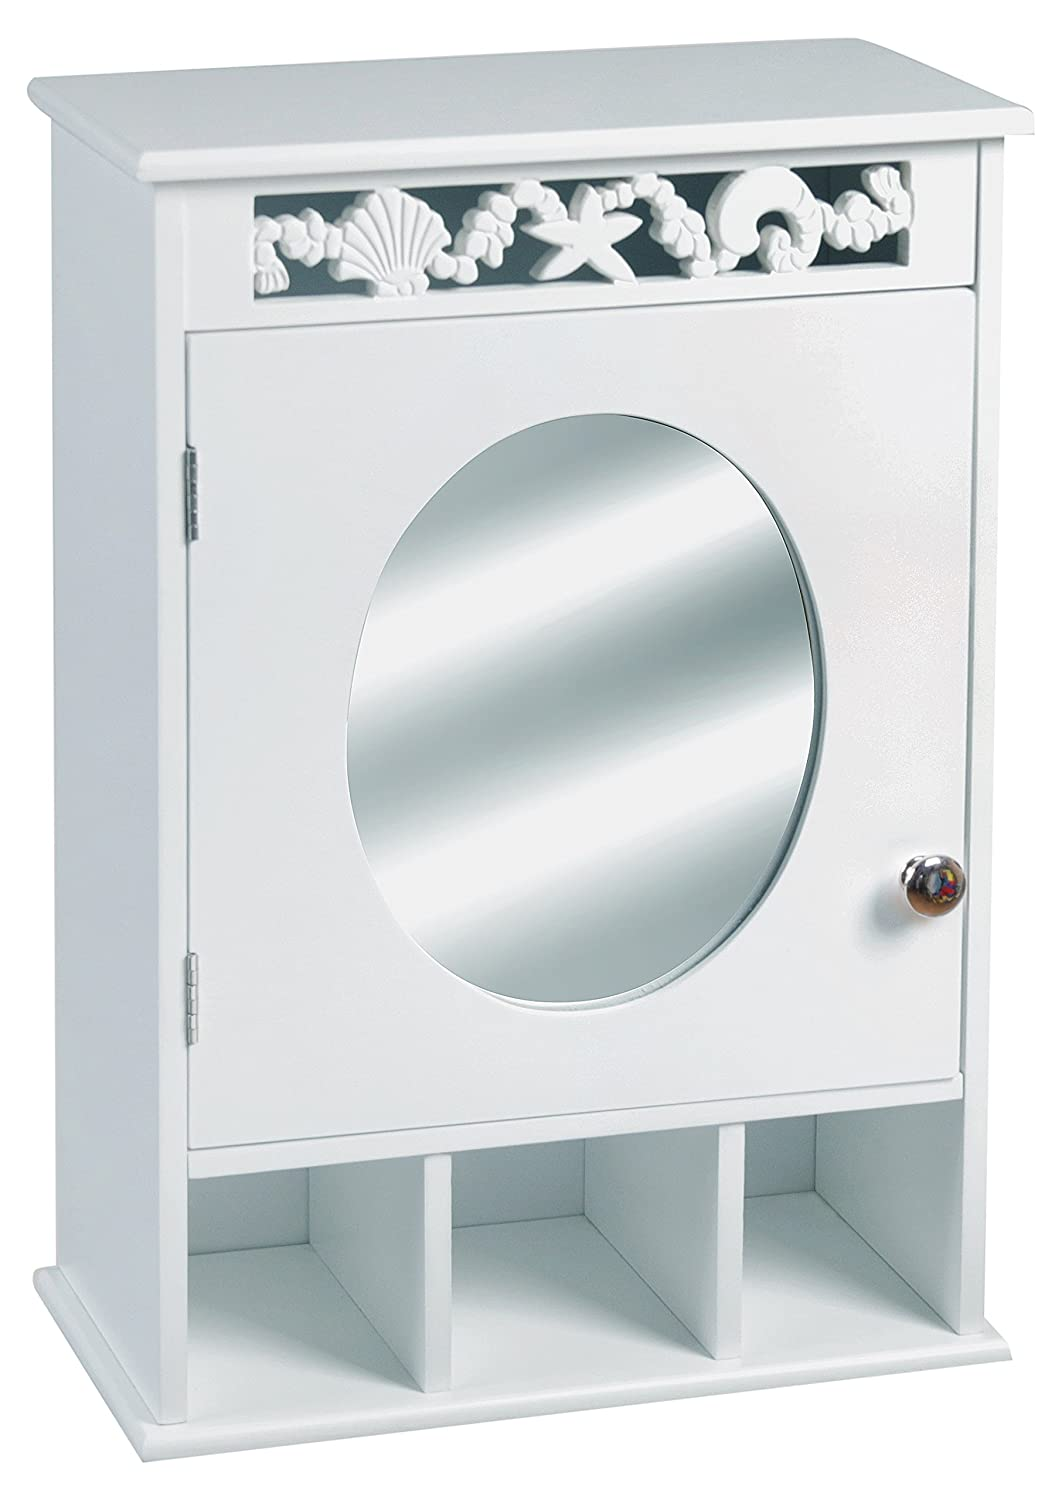 ASPECT Ellsworth Bathroom Toilet Roll Storage Cabinet, MDF, White ...